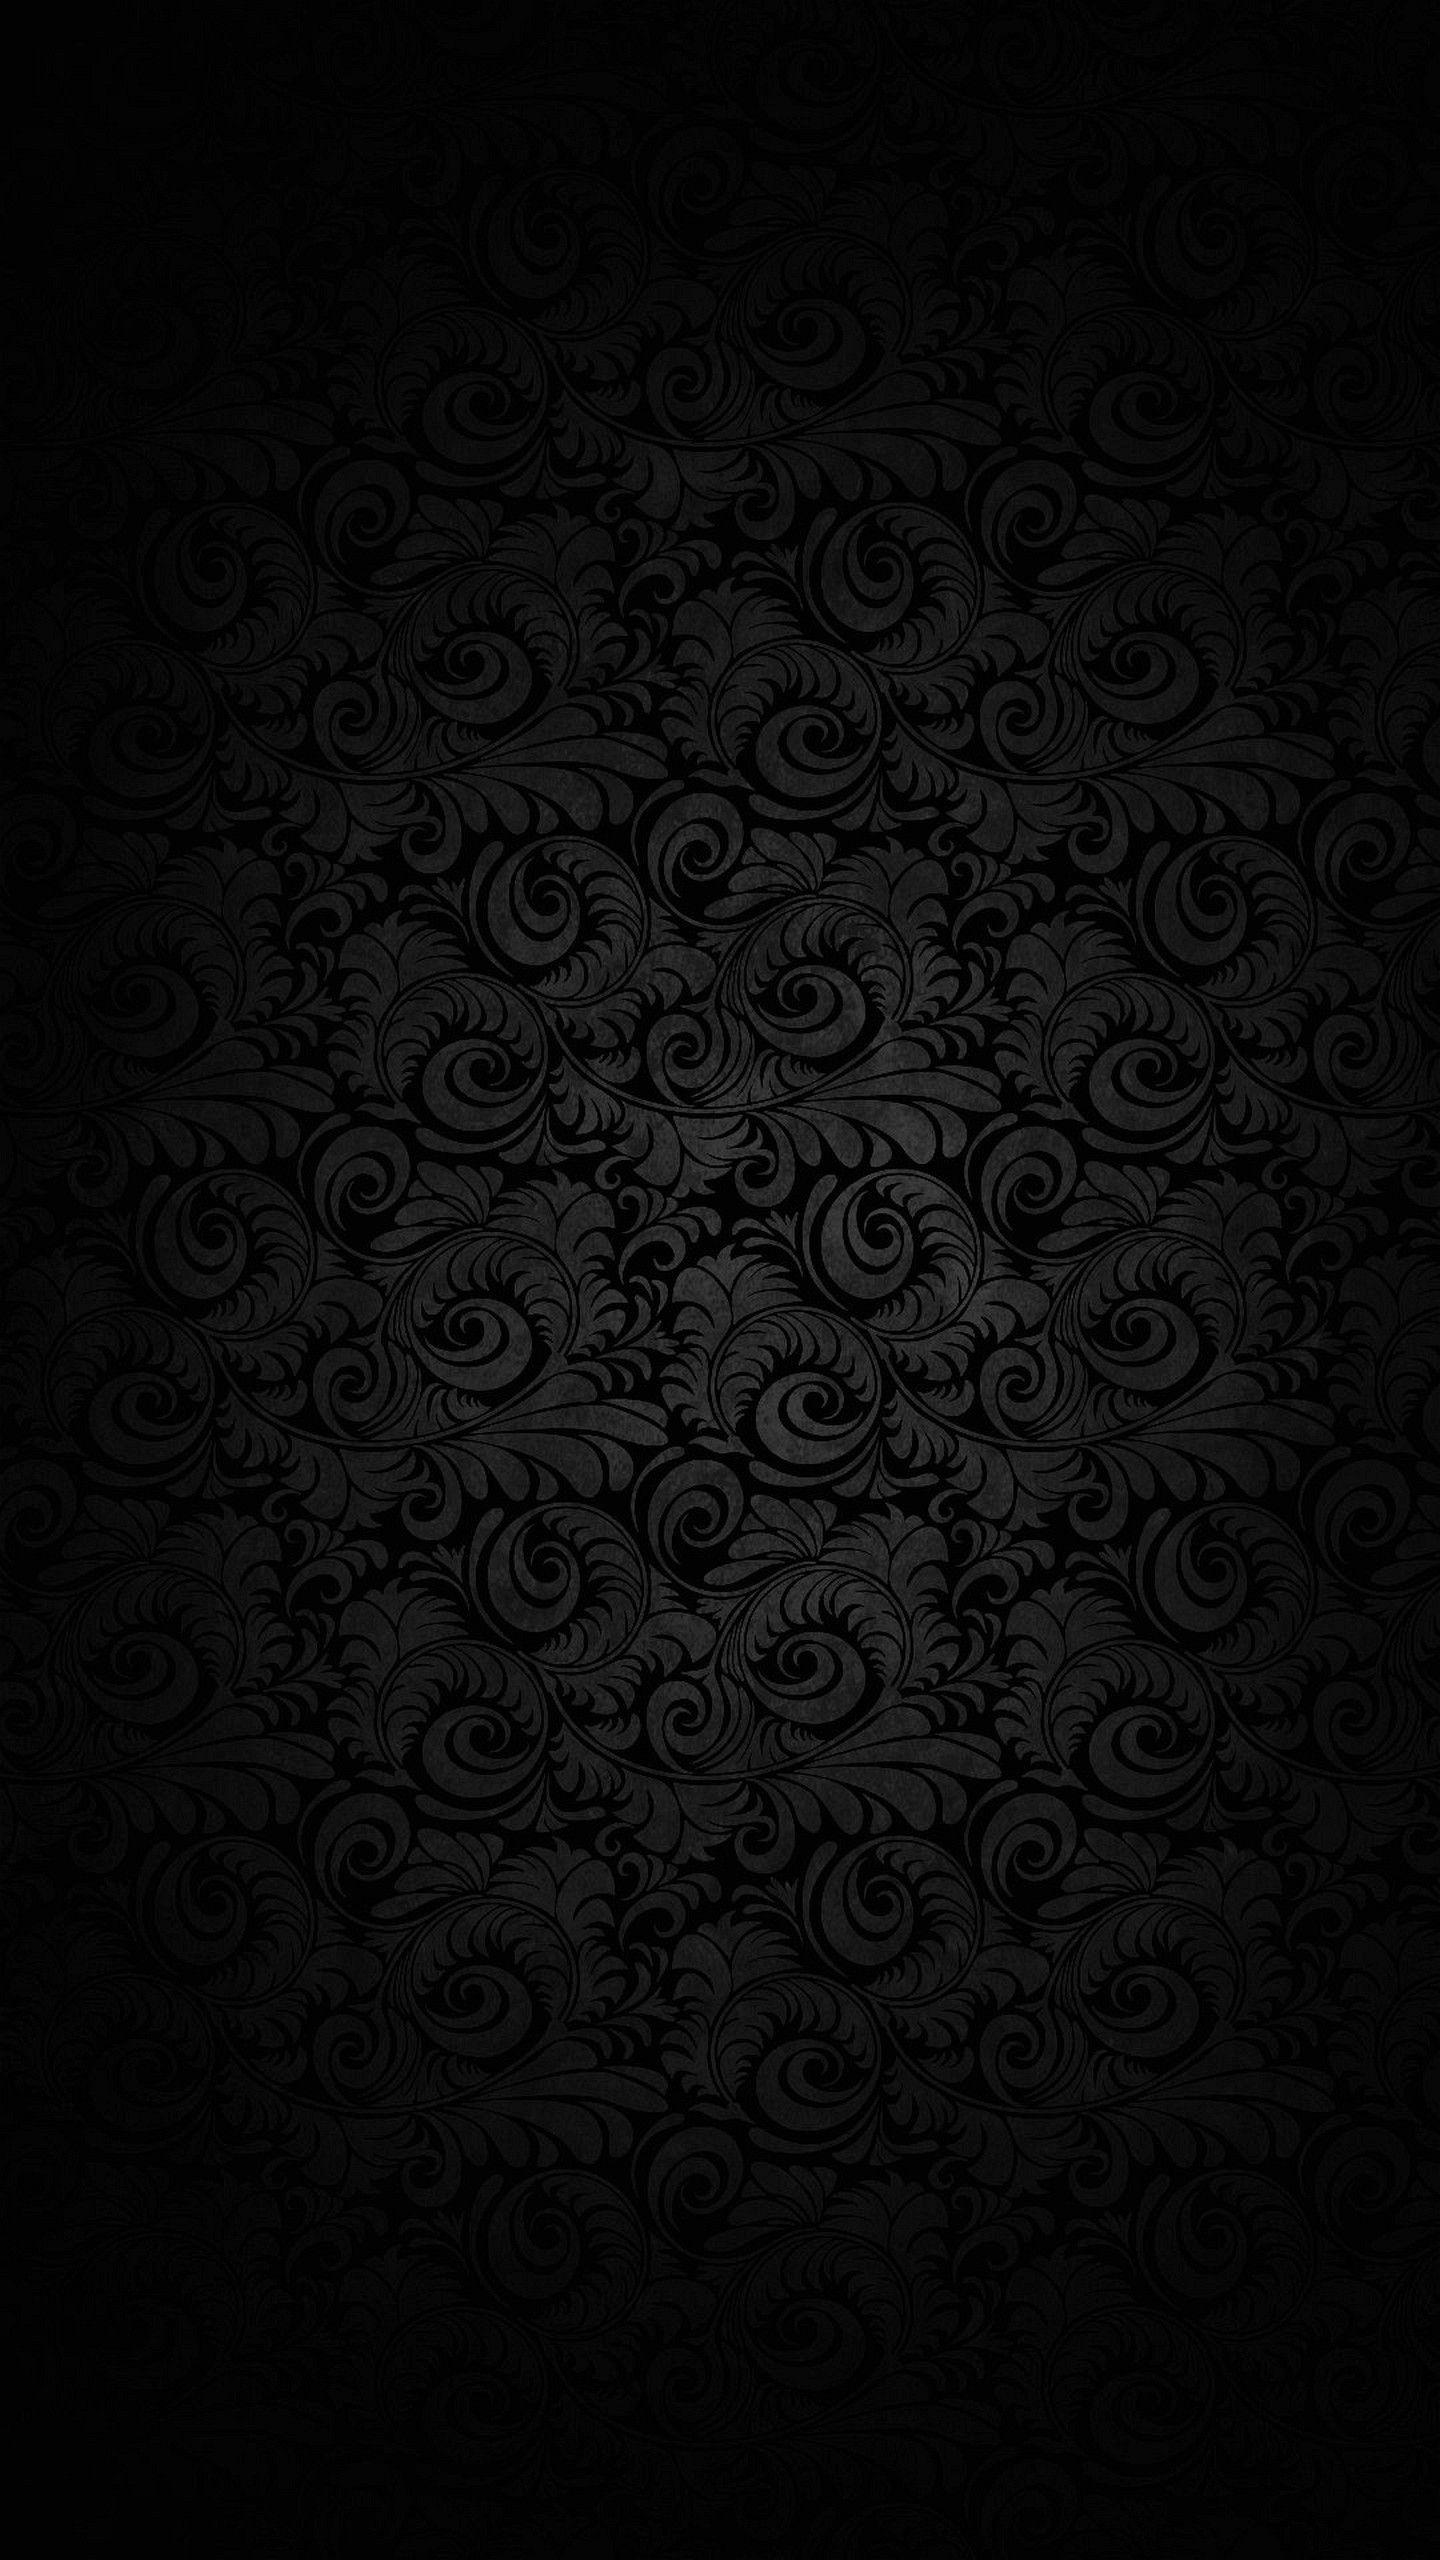 Wallpaper Note 4 Quad 1440 2560 Red Roses